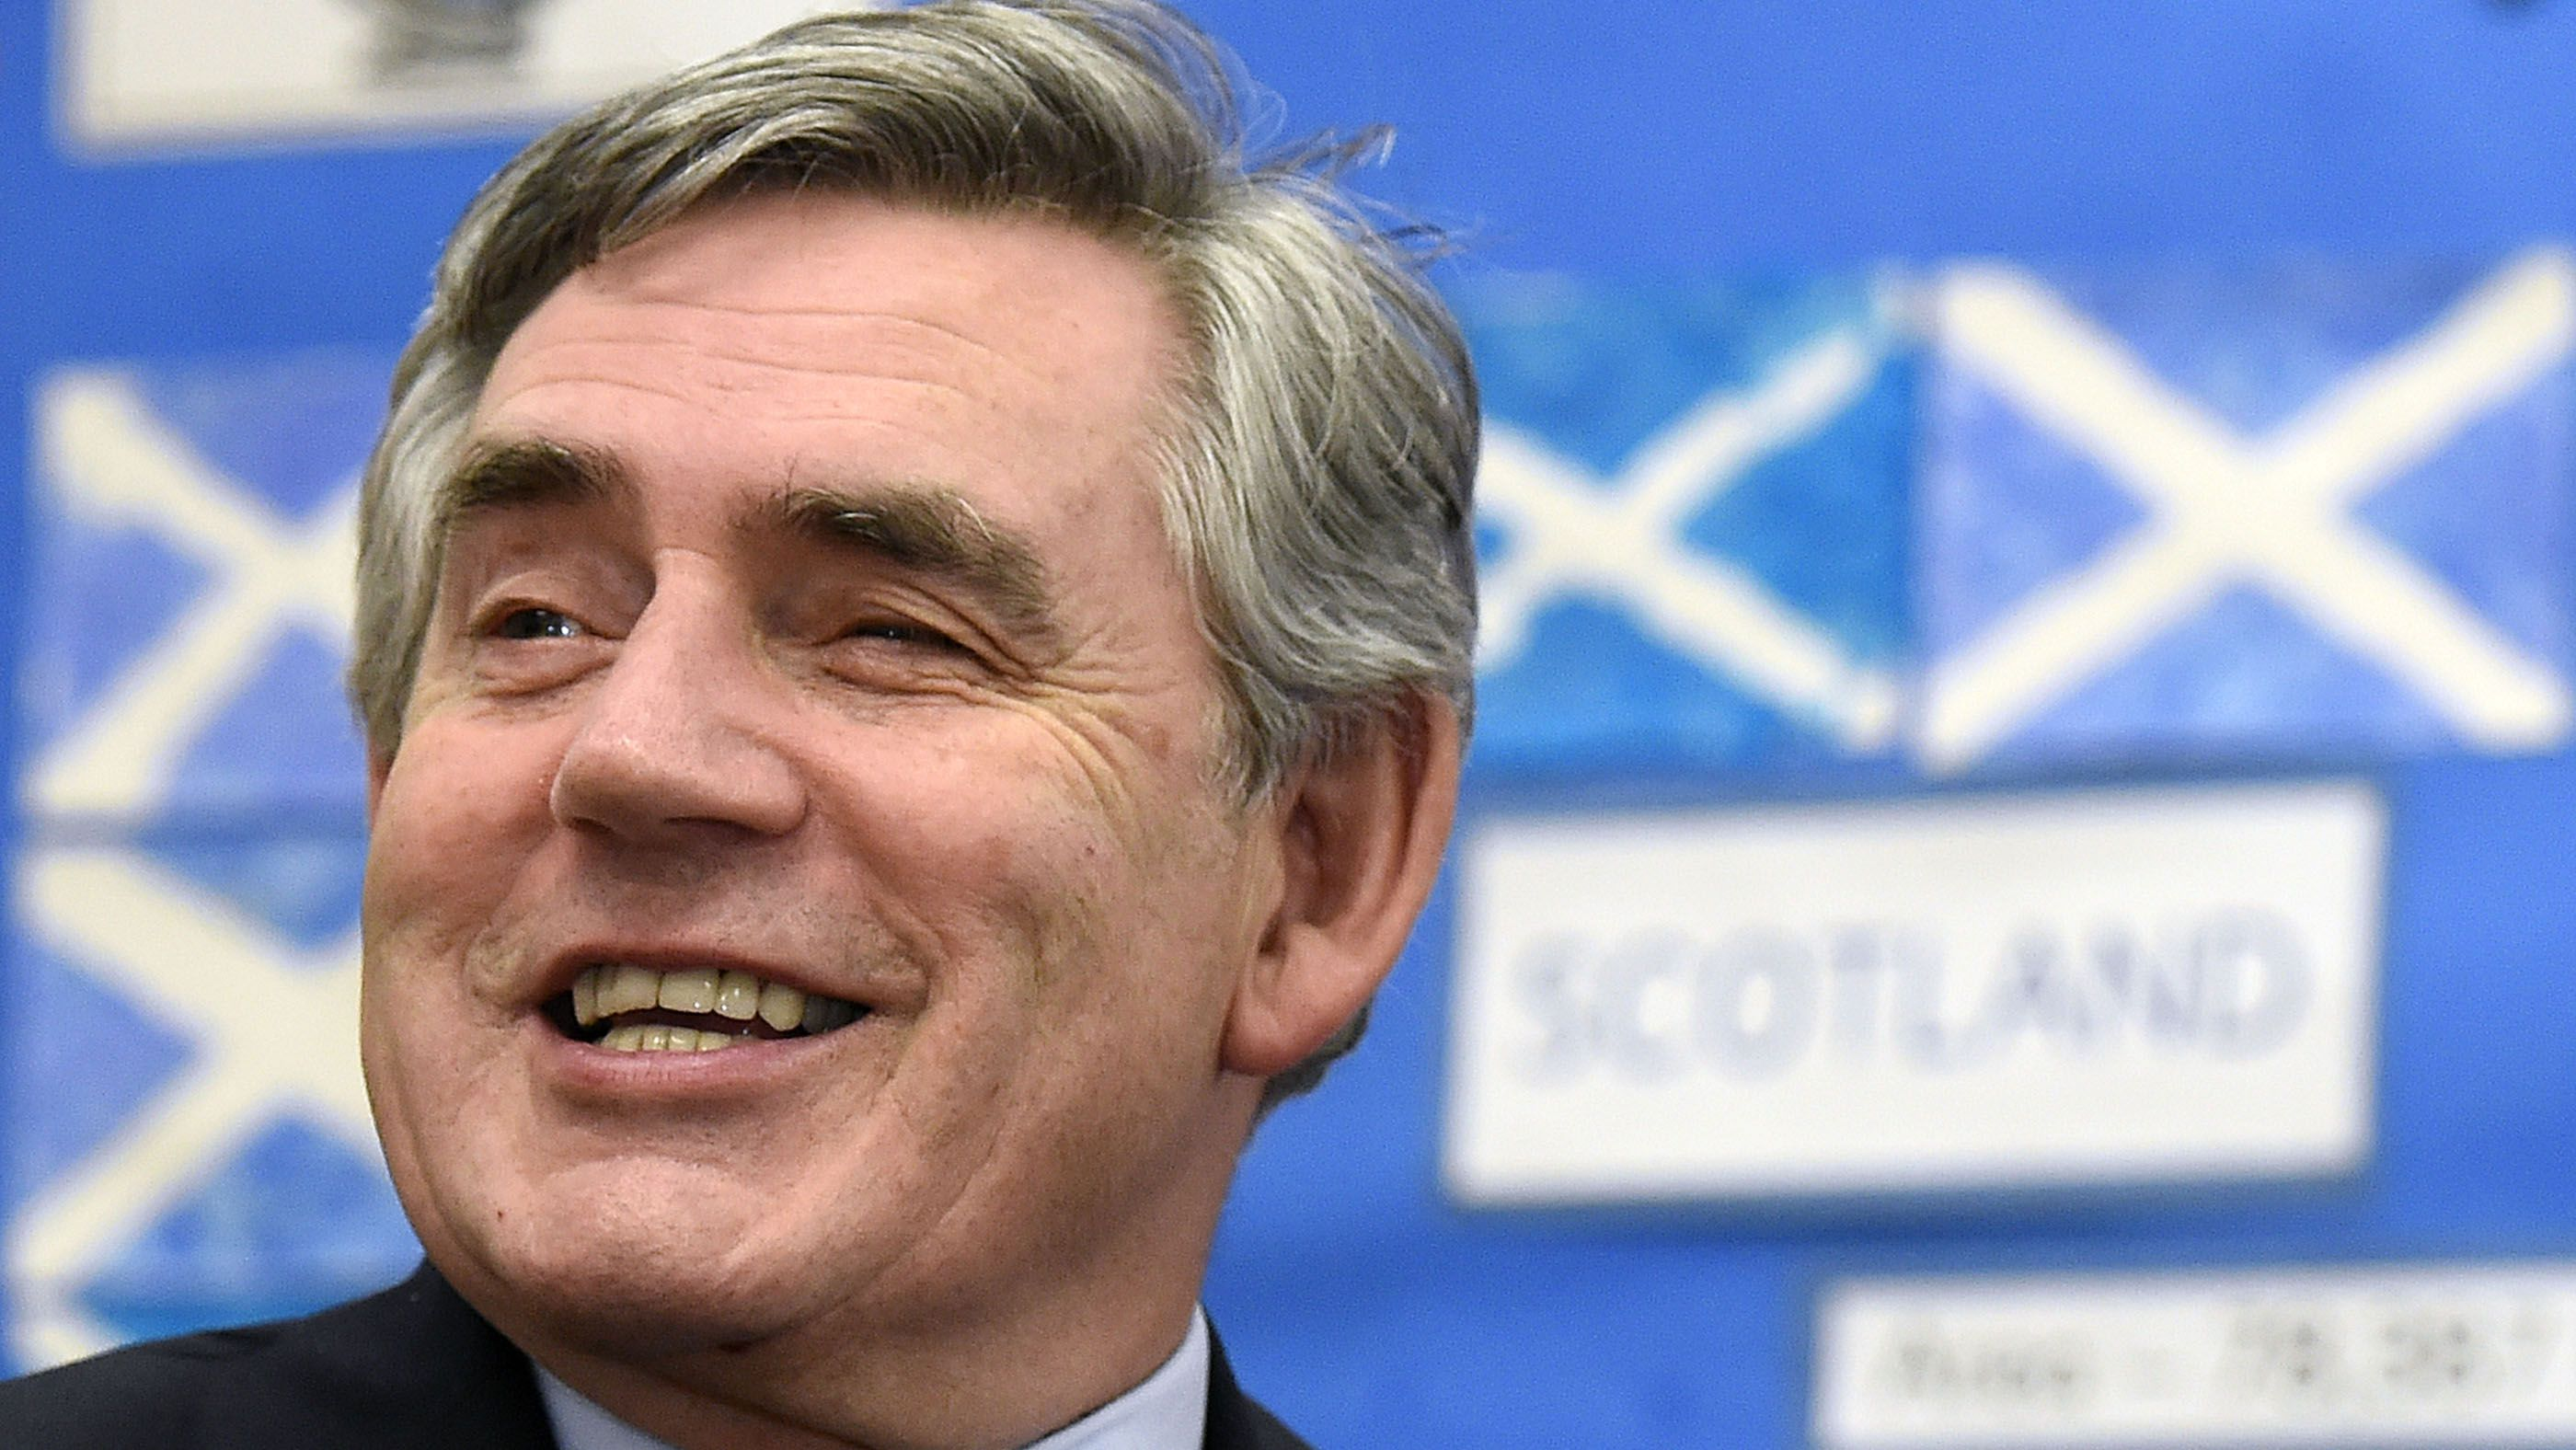 Former British Prime Minister Gordon Brown speaks to pupils during a visit to Kelty Primary School in Fife , Scotland September 19, 2014. Scotland spurned independence in a historic referendum that threatened to rip the United Kingdom apart, sow financial turmoil and diminish Britiain's remaining global clout. REUTERS/Garry F McHarg/Pool (BRITAIN - Tags: POLITICS ELECTIONS)